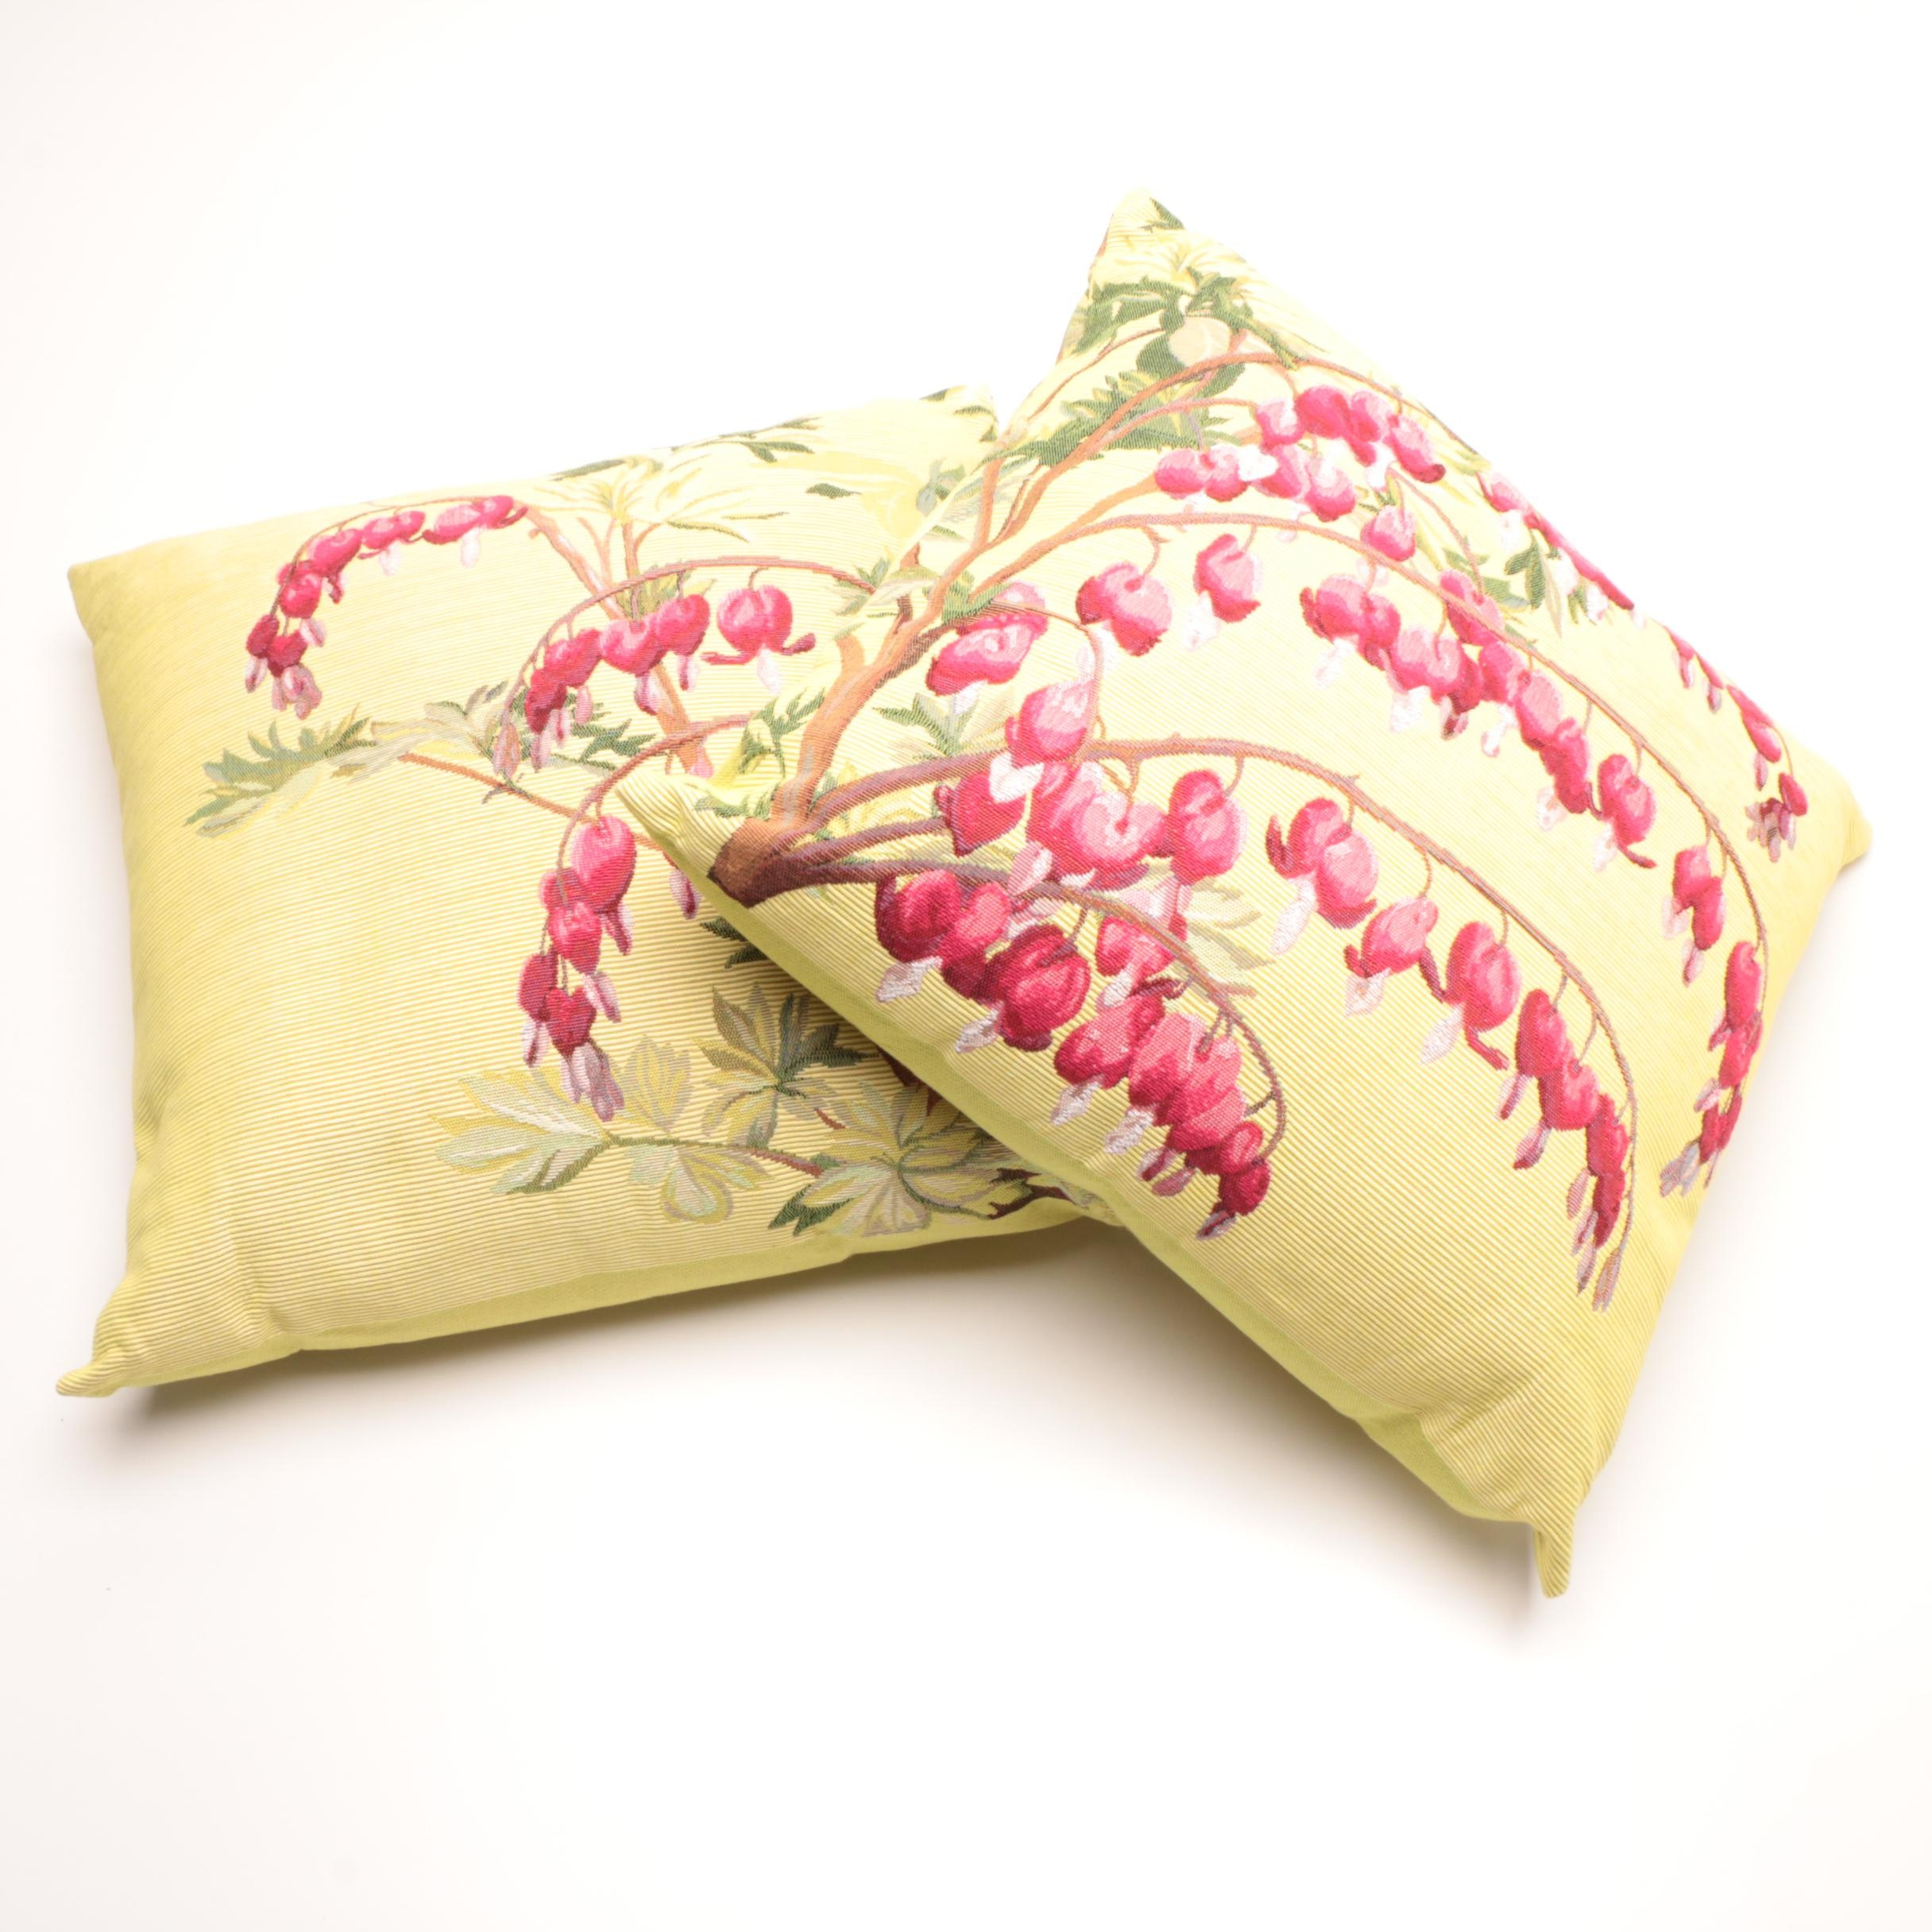 "French Tissage ""Art de Lys"" Floral Accent Pillows"